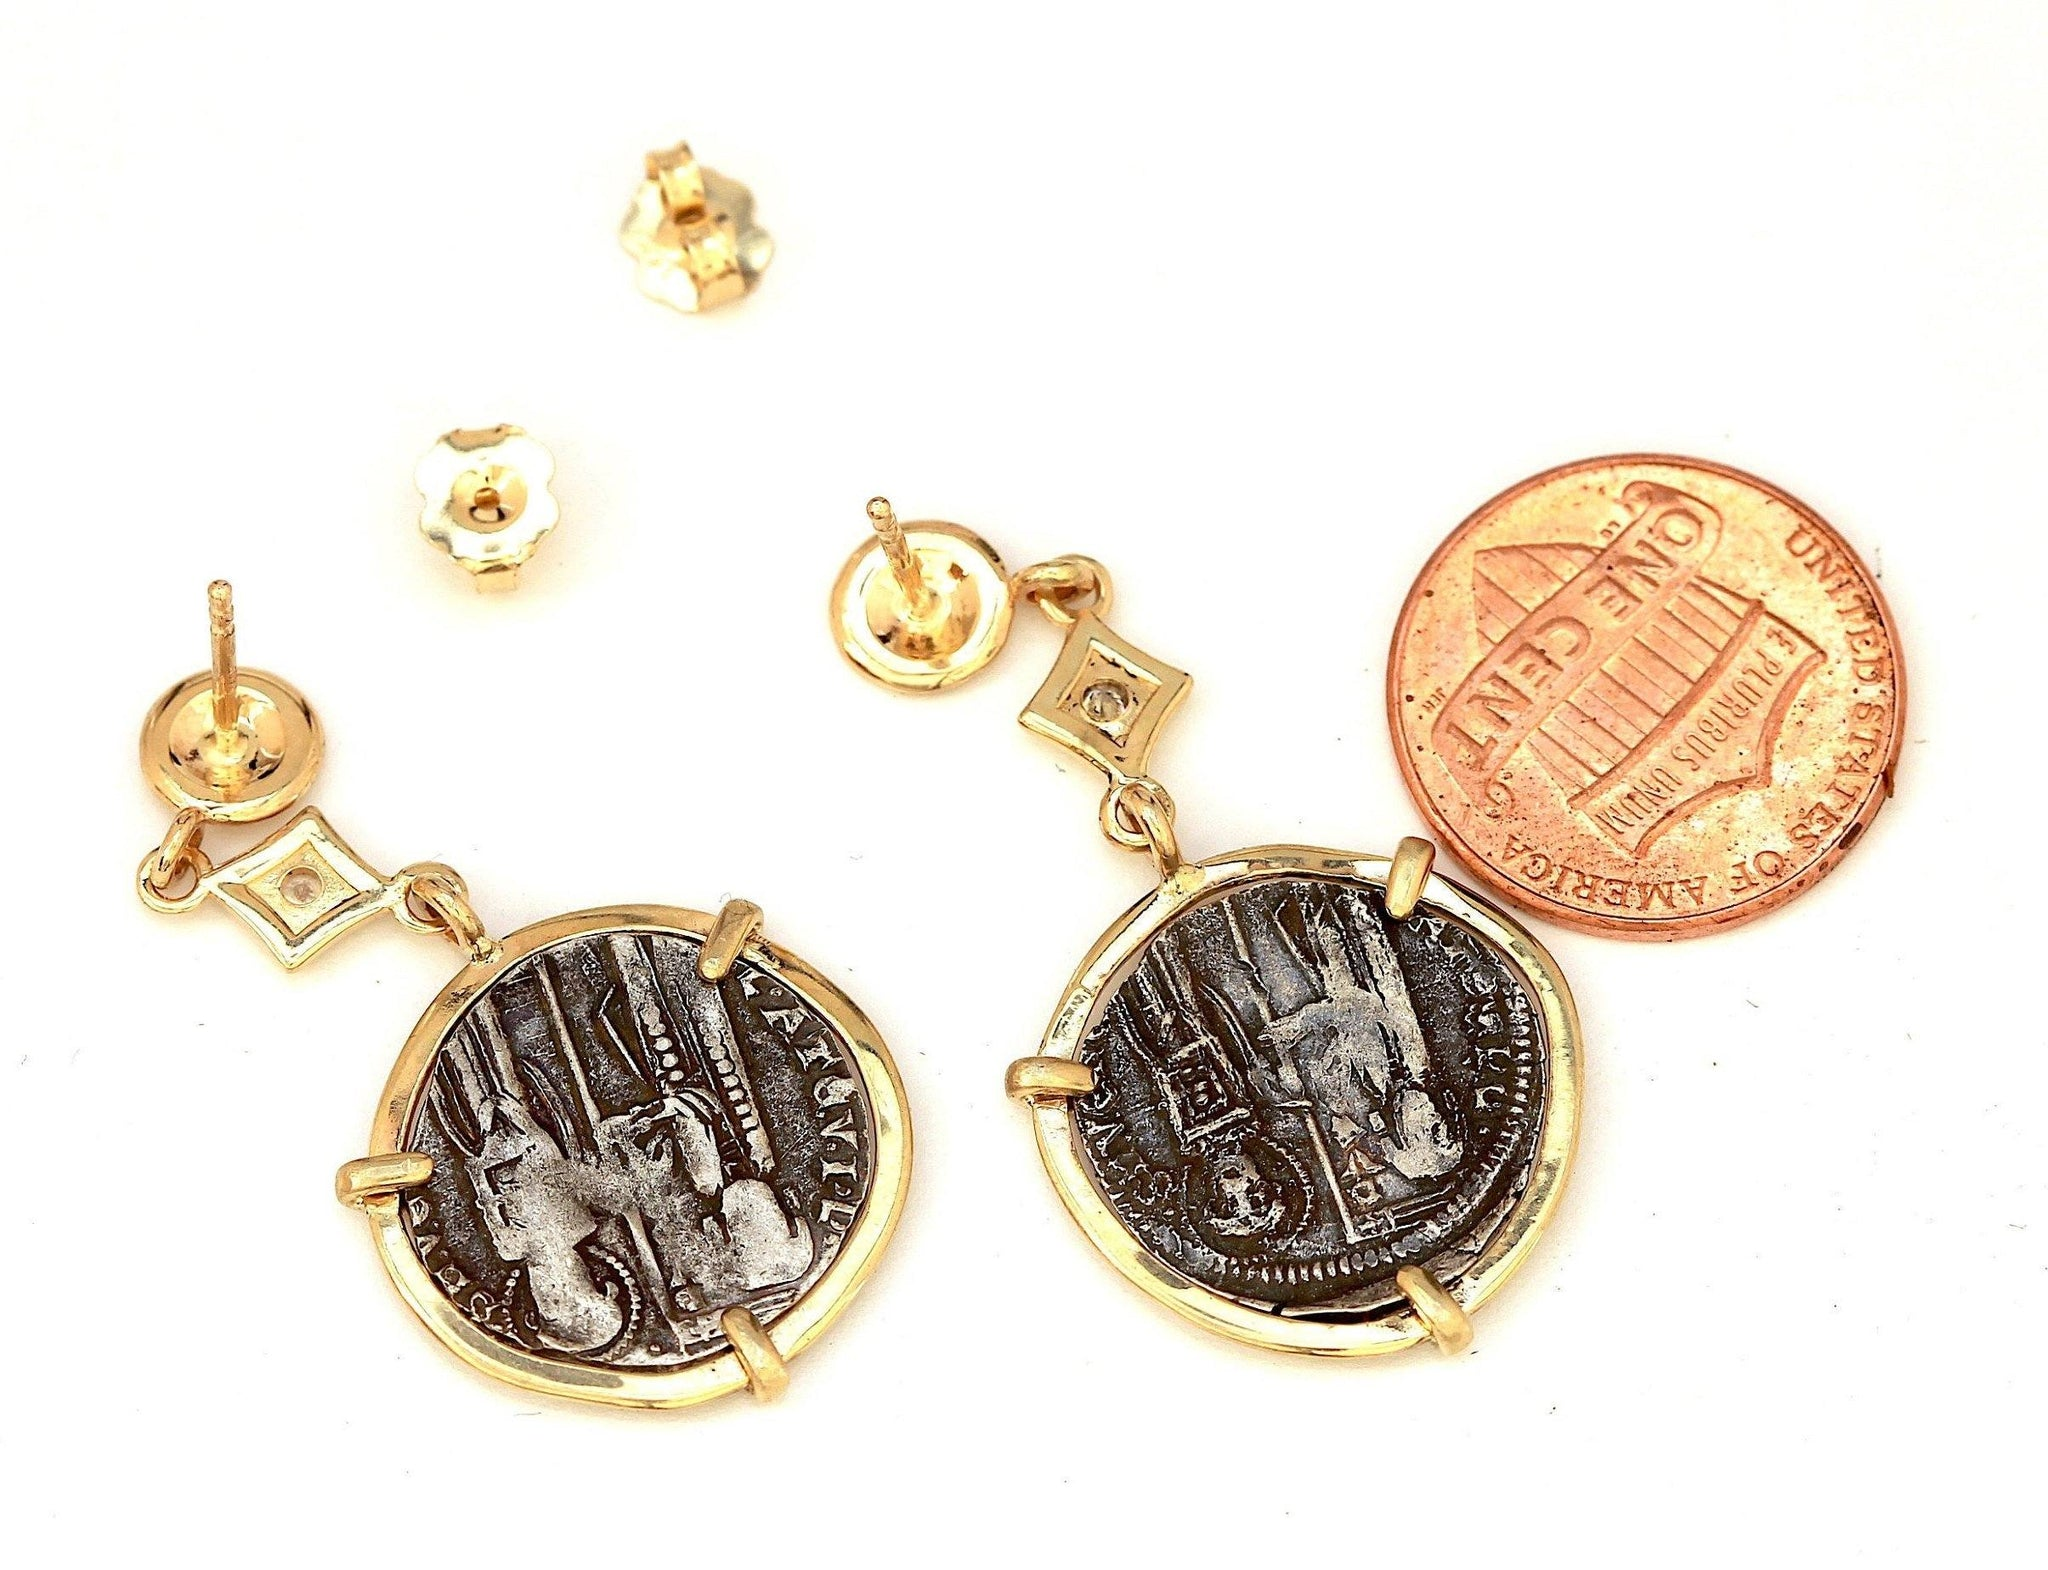 Venetian Grosso Coin Earrings, 14K Gold Post Earrings, Genuine Ancient Coin with Certificate 6321 - Erez Ancient Coin Jewelry